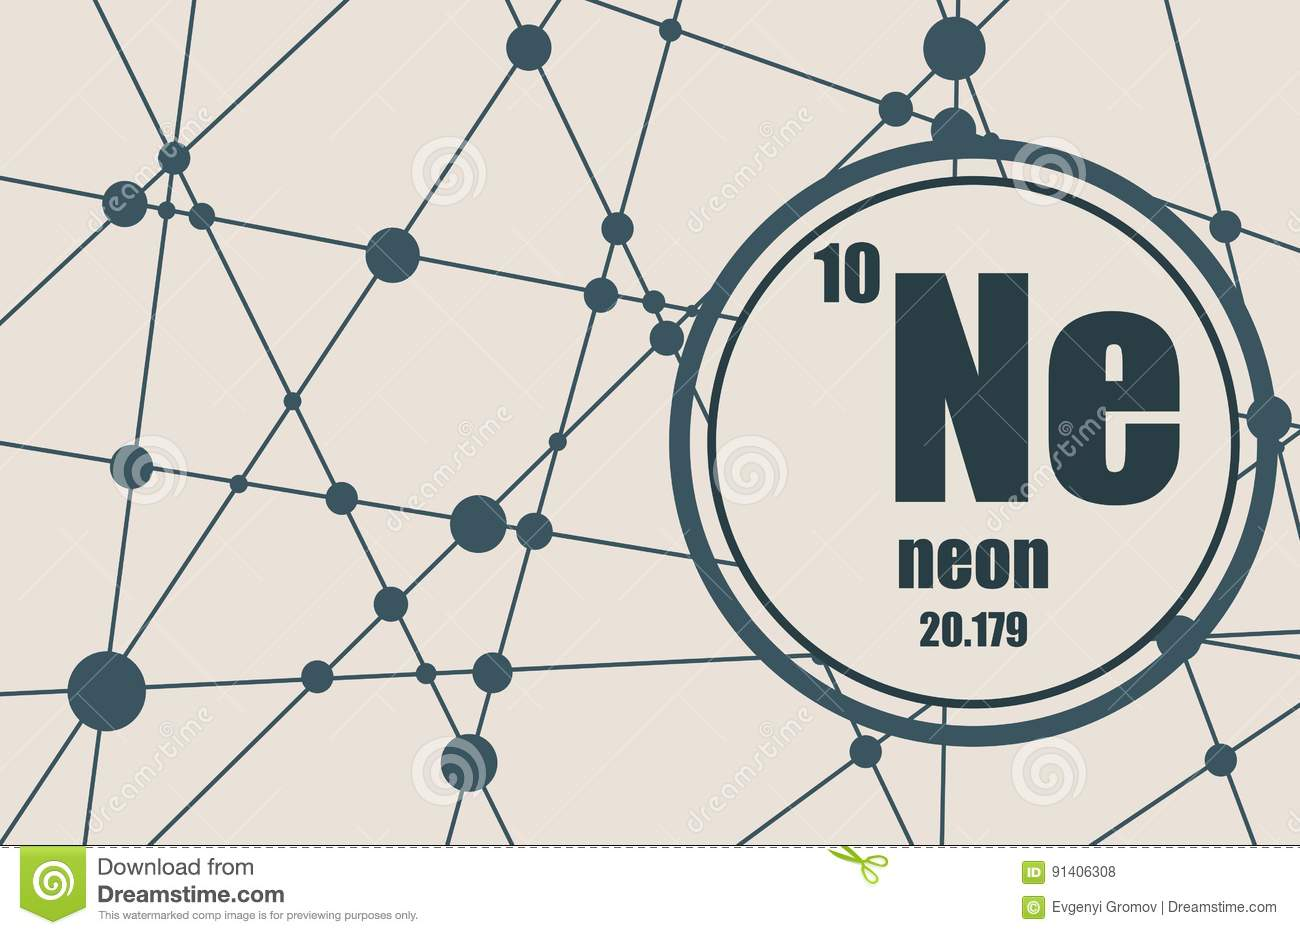 Neon chemical element stock vector image of molecule 91406308 neon chemical element gamestrikefo Images